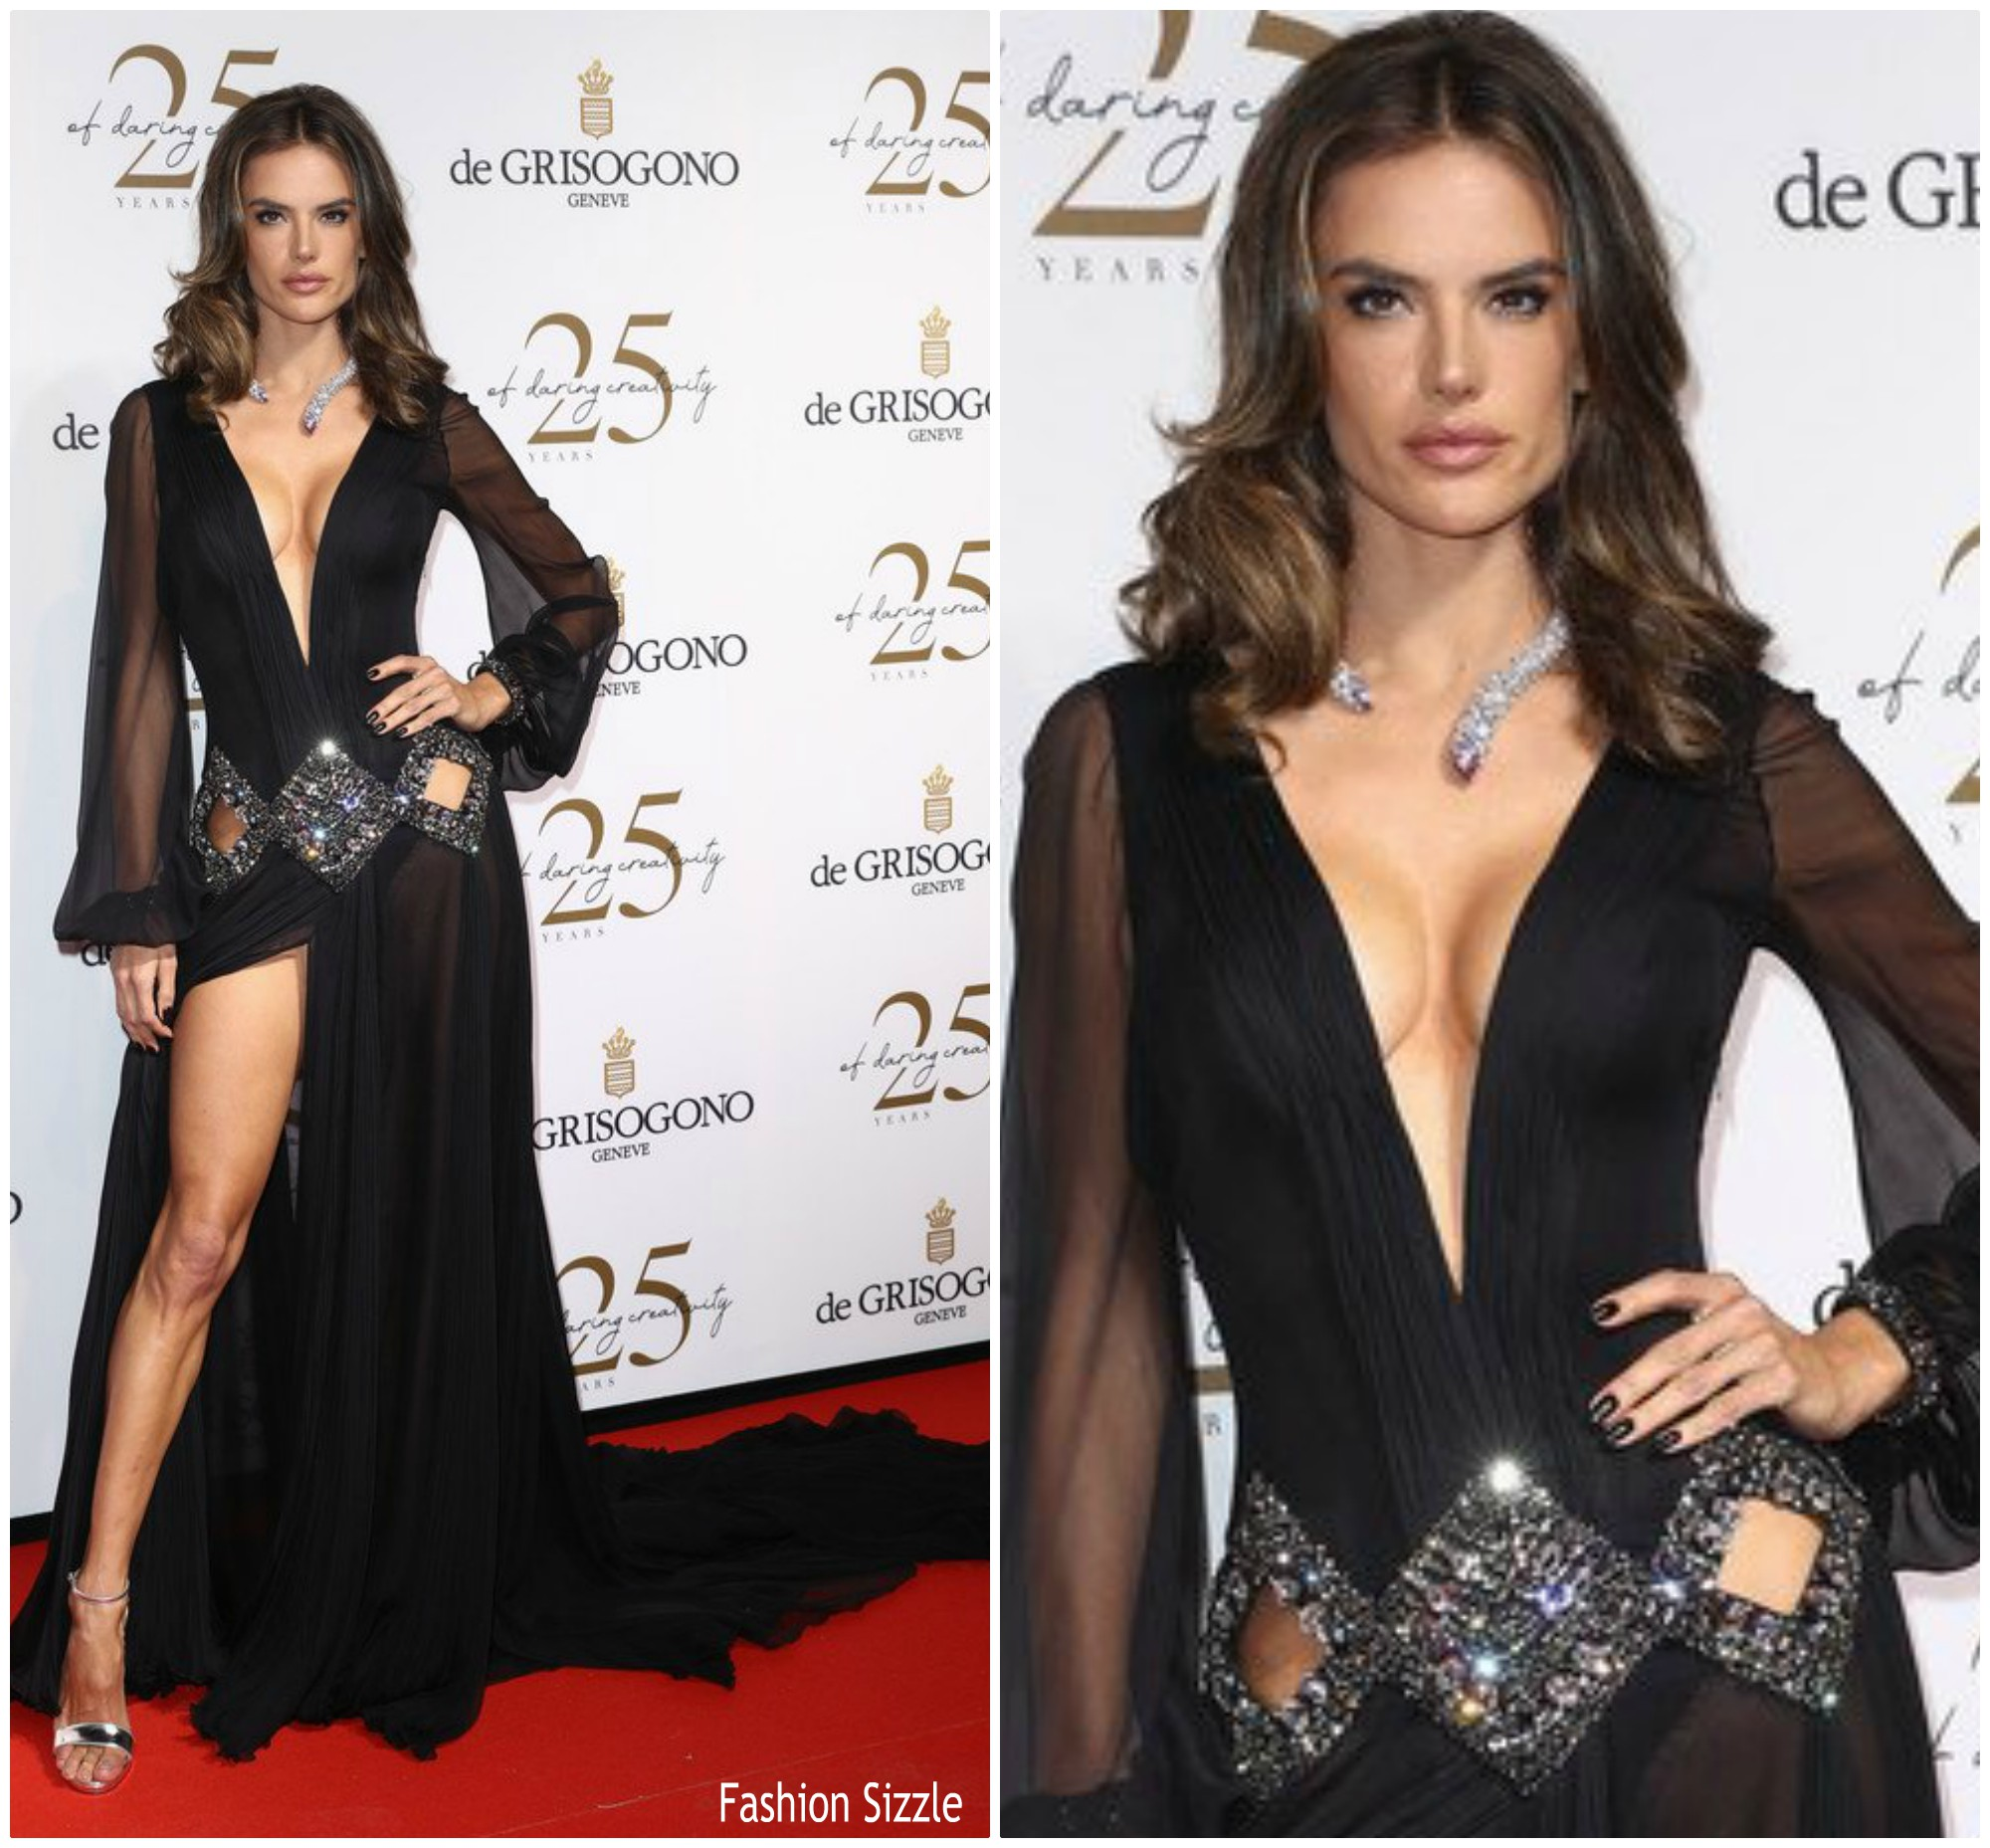 alessandra-ambrosio-in-roberto-cavalli-couture-2018-degrisogono-cannes-party